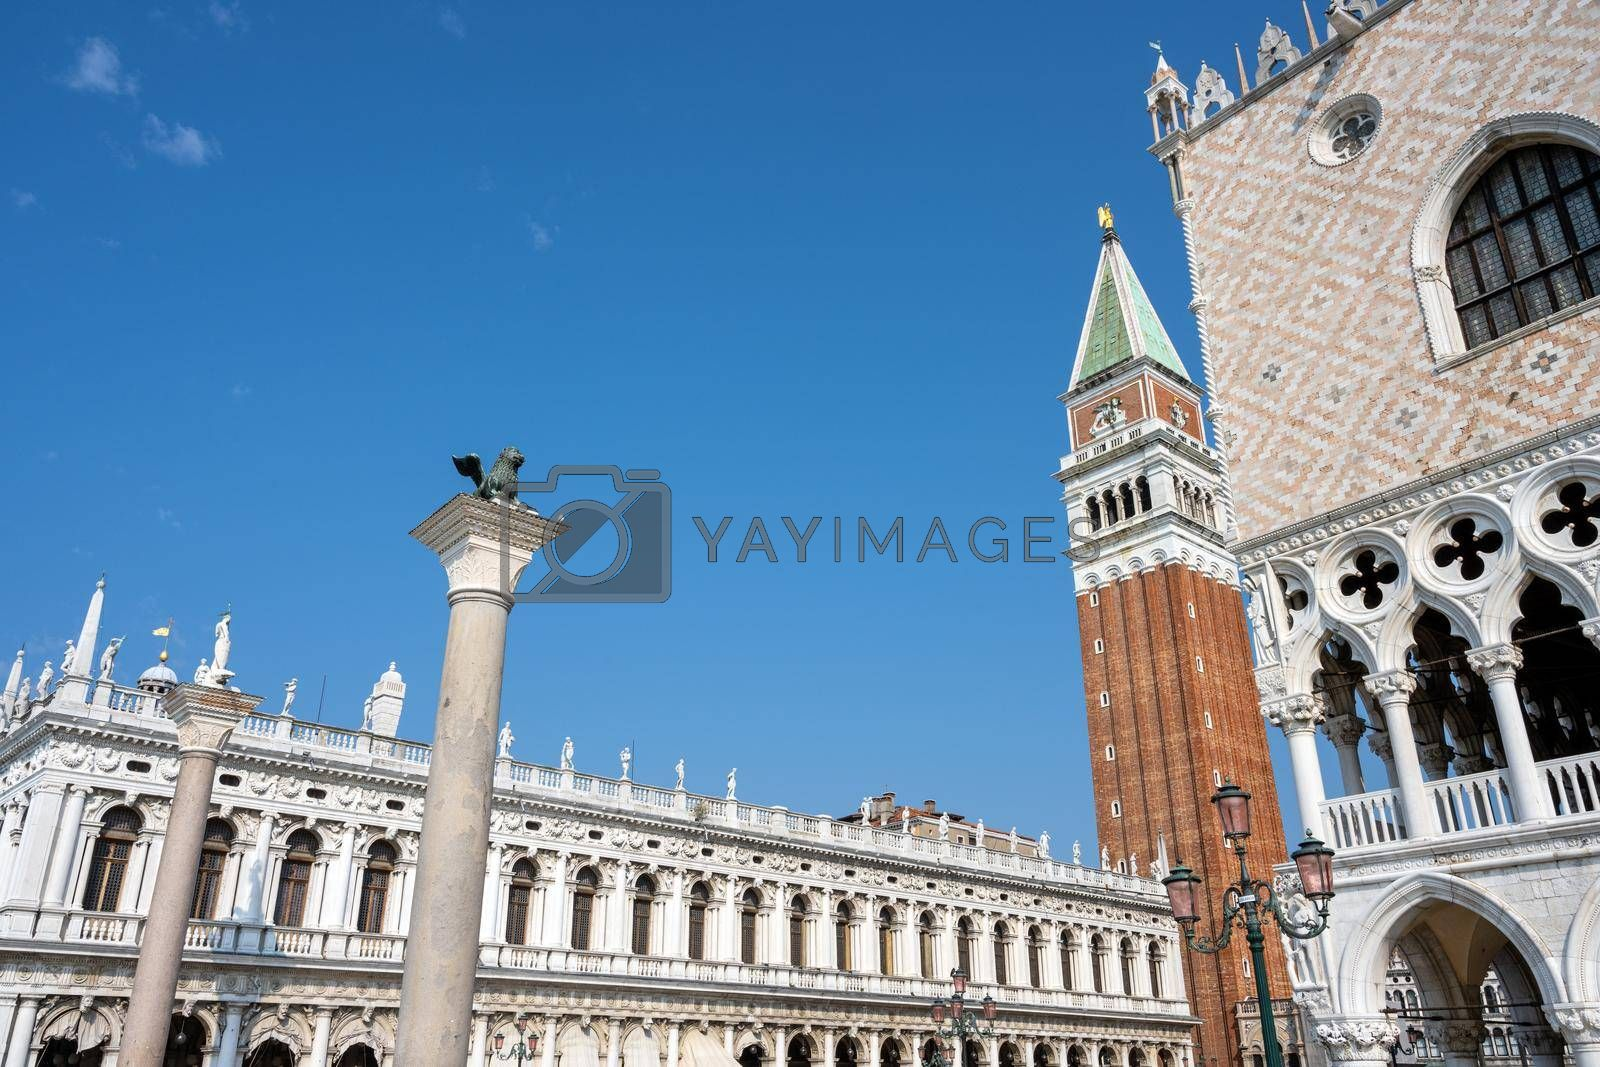 Royalty free image of Part of the famous Doges Palace with the Campanile and the Marciana Library by elxeneize